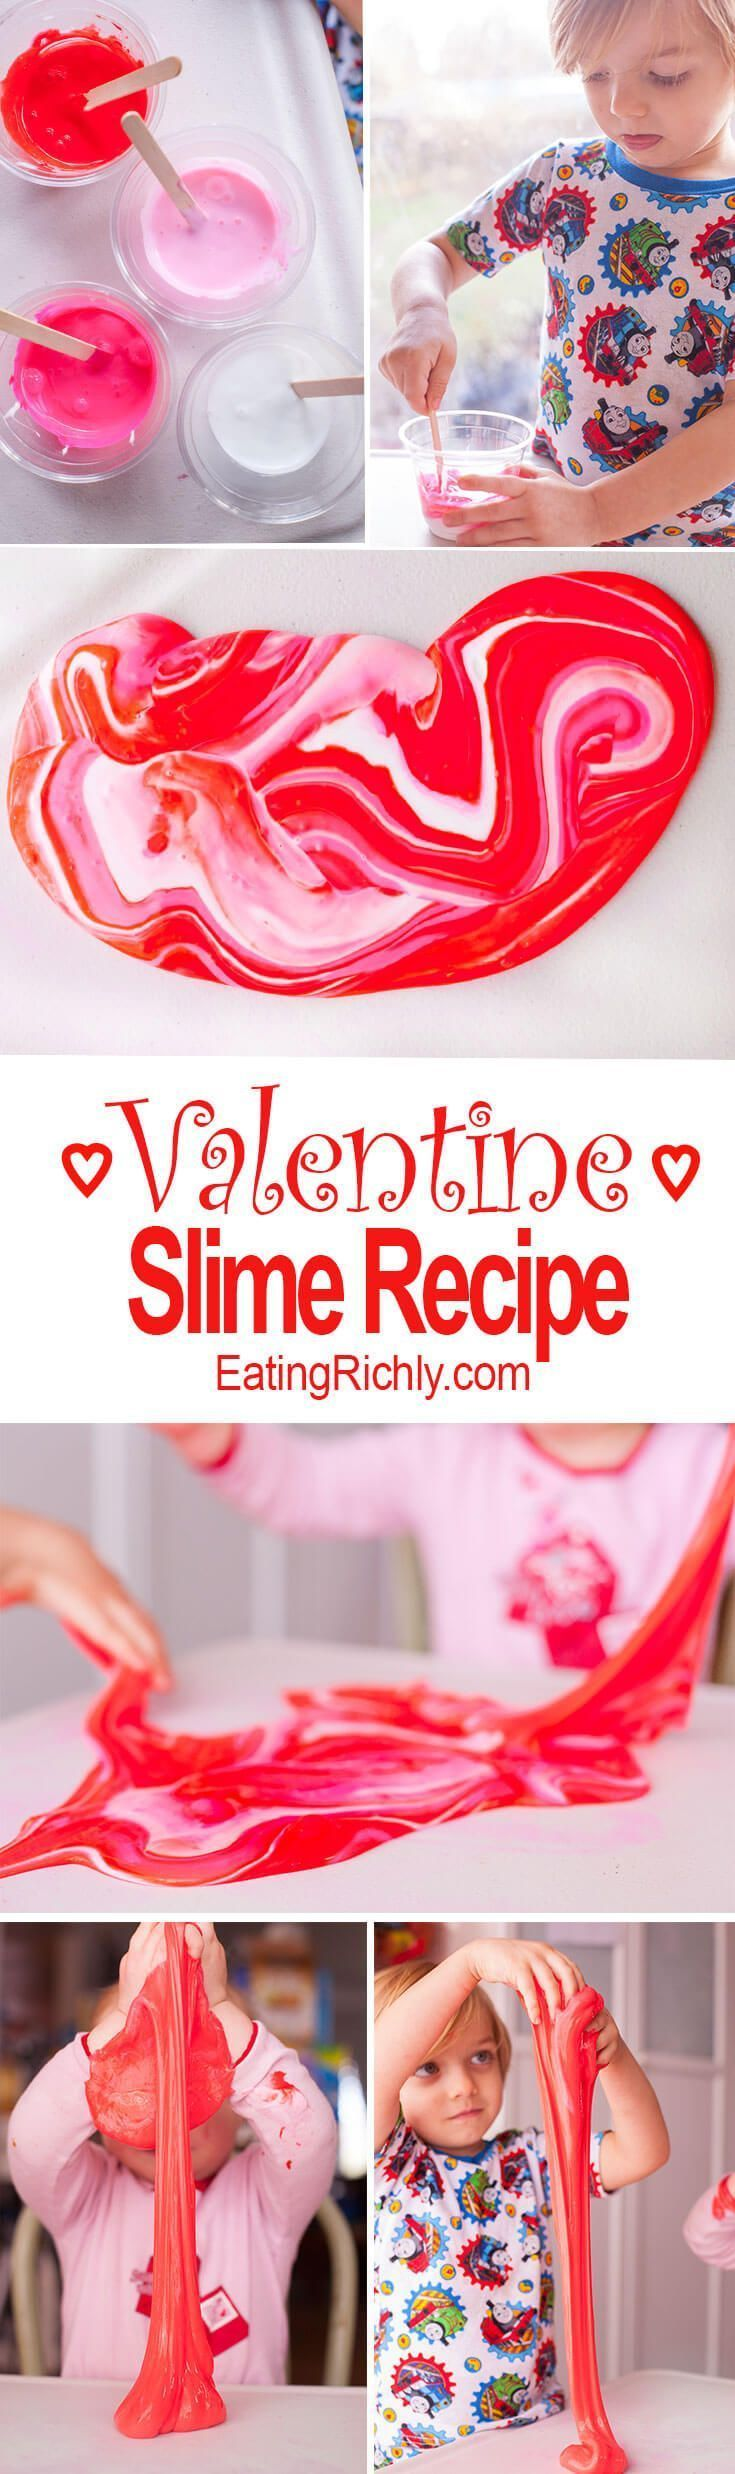 This quick and easy borax slime recipe makes a Valentine's Day activity that provides hours of entertainment. From http://EatingRichly.com